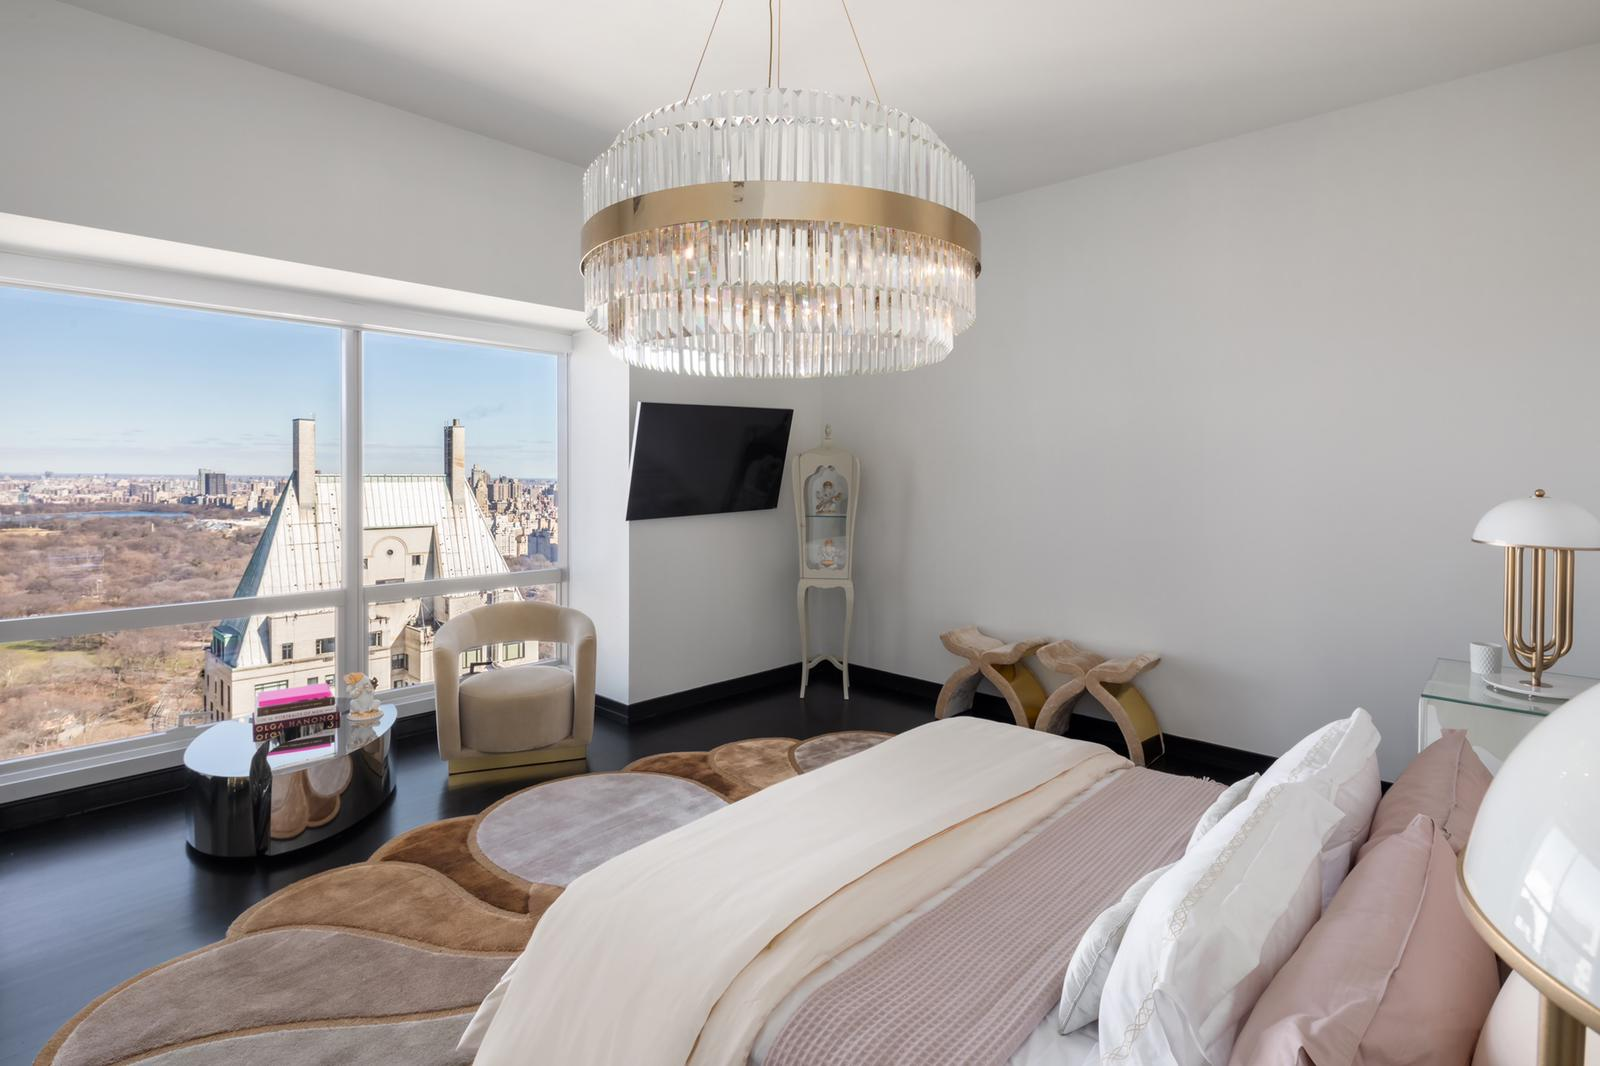 NYC's New Luxury Design Project Brings The Best Mid-Century Ideas luxury design project NYC's New Luxury Design Project Brings The Best Mid-Century Ideas NYCs New Luxury Design Project Brings The Best Mid Century Ideas